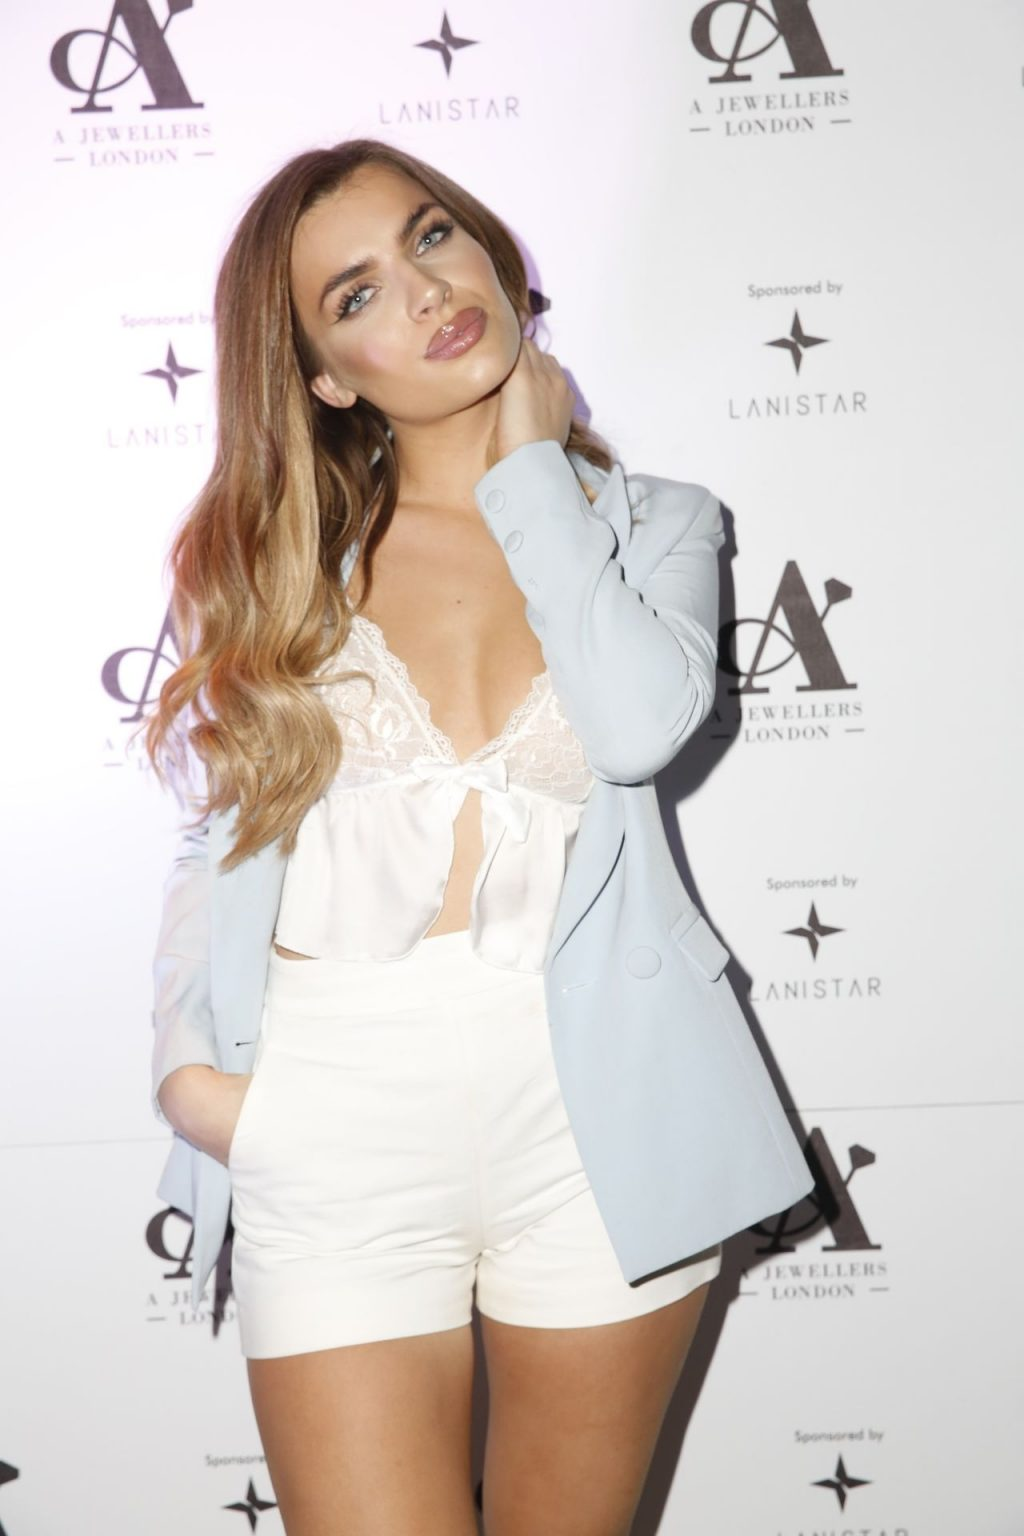 Maria Wild Wears A See-Through Top at A Jewellers London Launch (21 Photos)